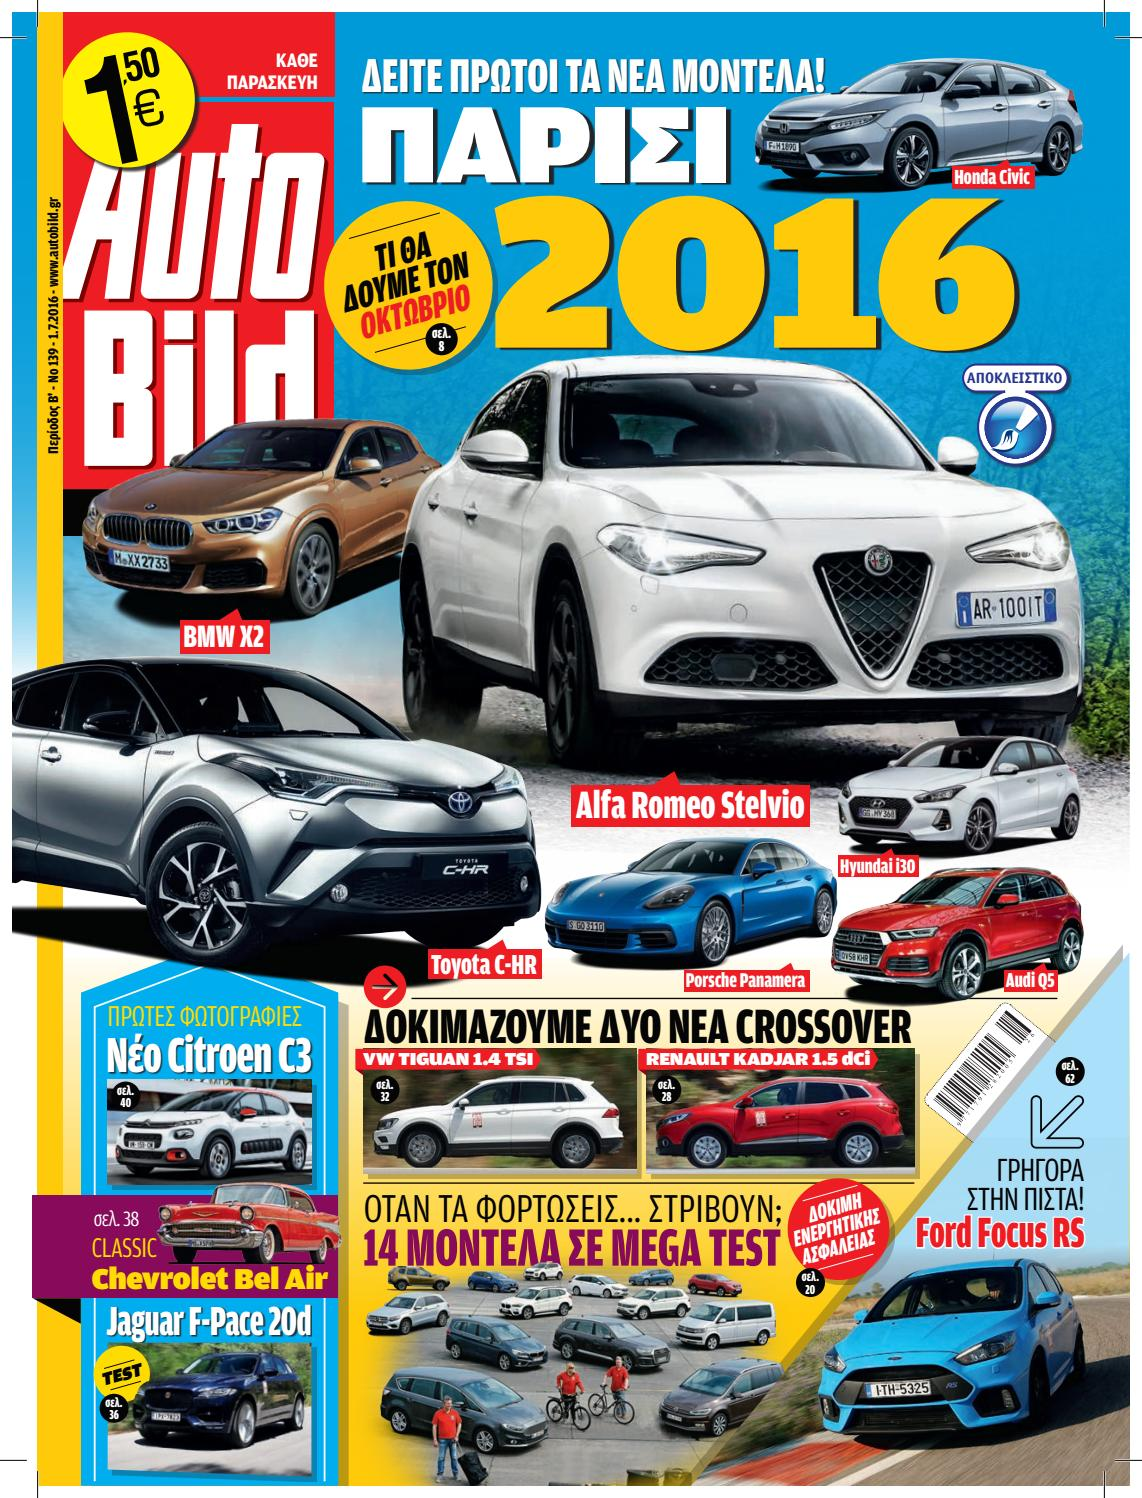 4TPOXOI AUGUST 2016 by alphaeditions - issuu 44716898911